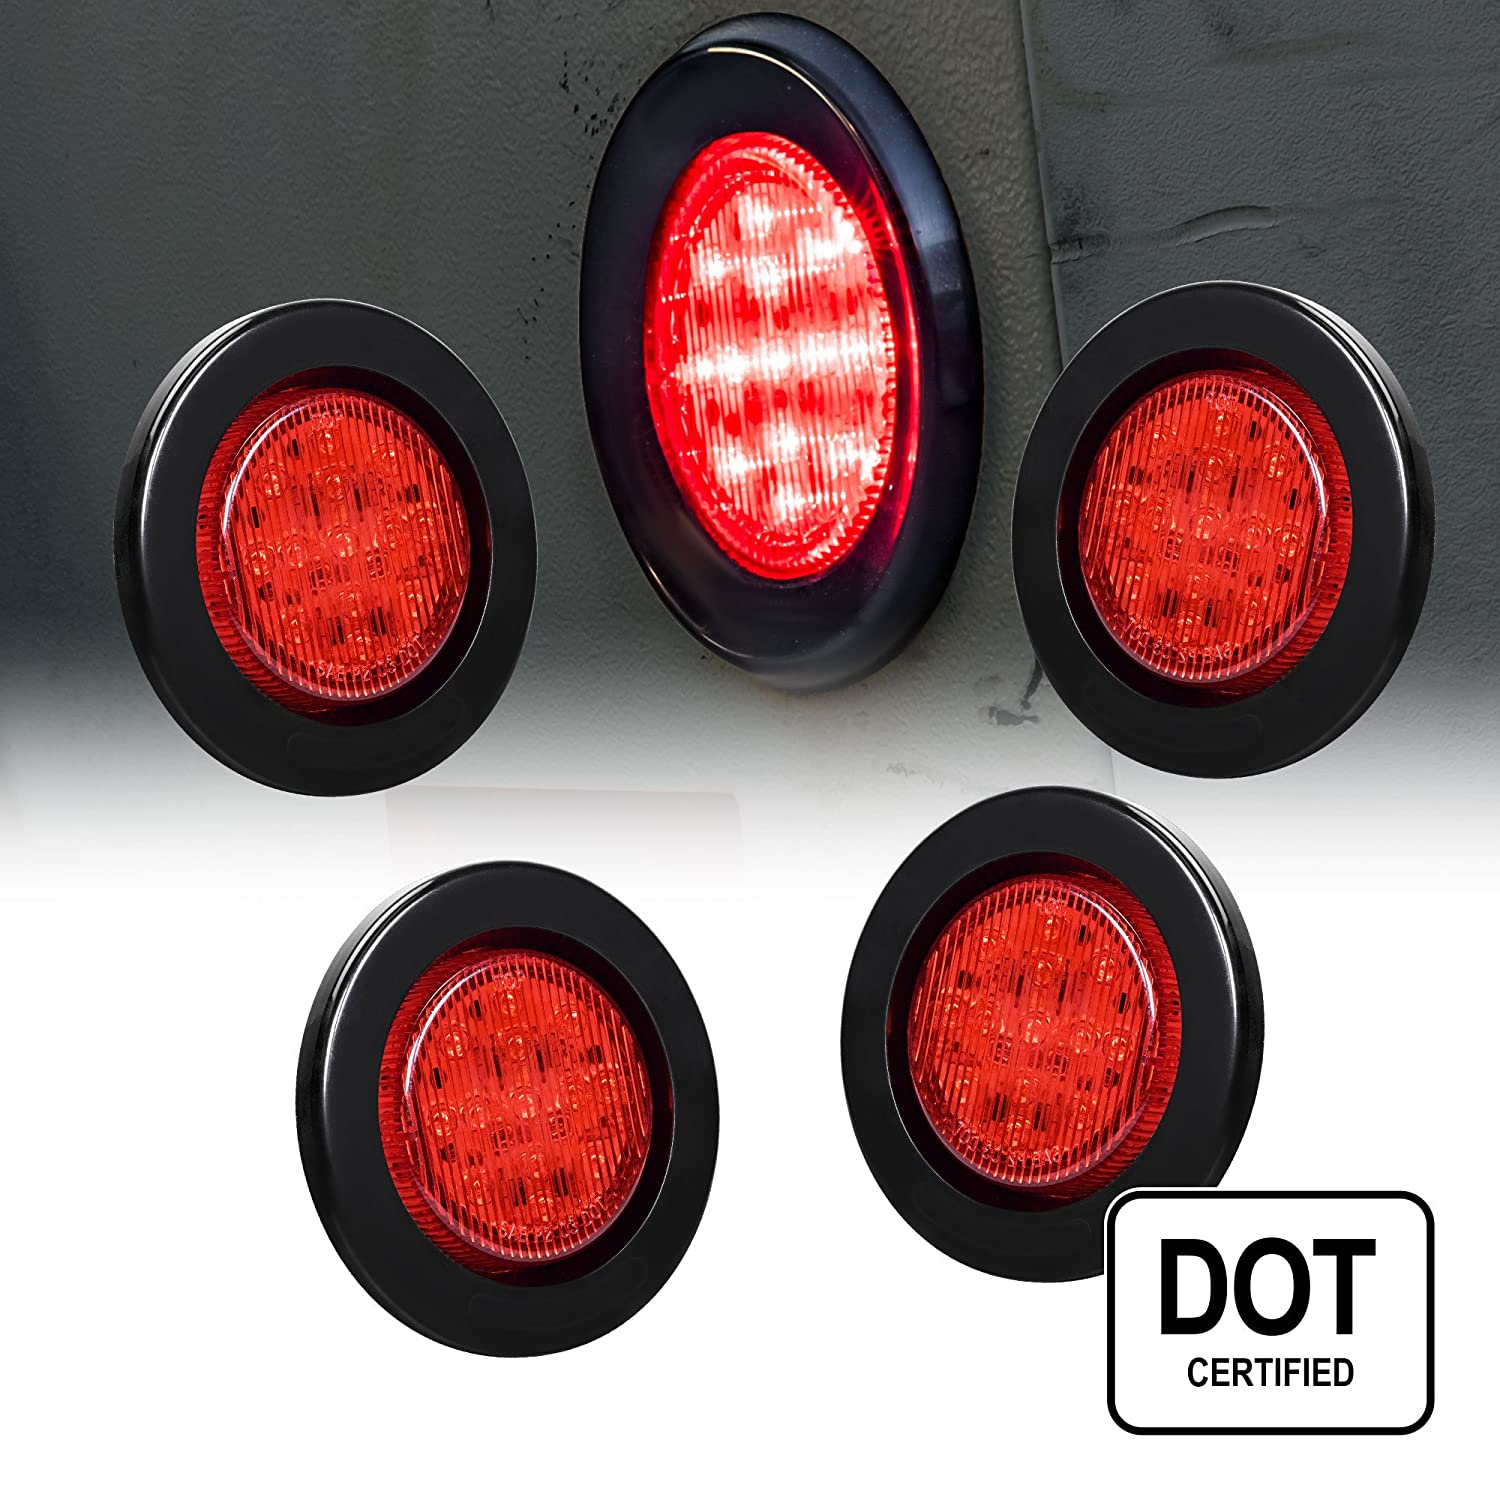 4PC 2.5' Round 10 LED Light [2 in 1 Reflector] [Polycarbonate Reflector] [13 LEDs] [D.O.T. Certified] [2 Year Warranty] Side Marker Light for Trucks and Trailers - Red ONLINE LED STORE